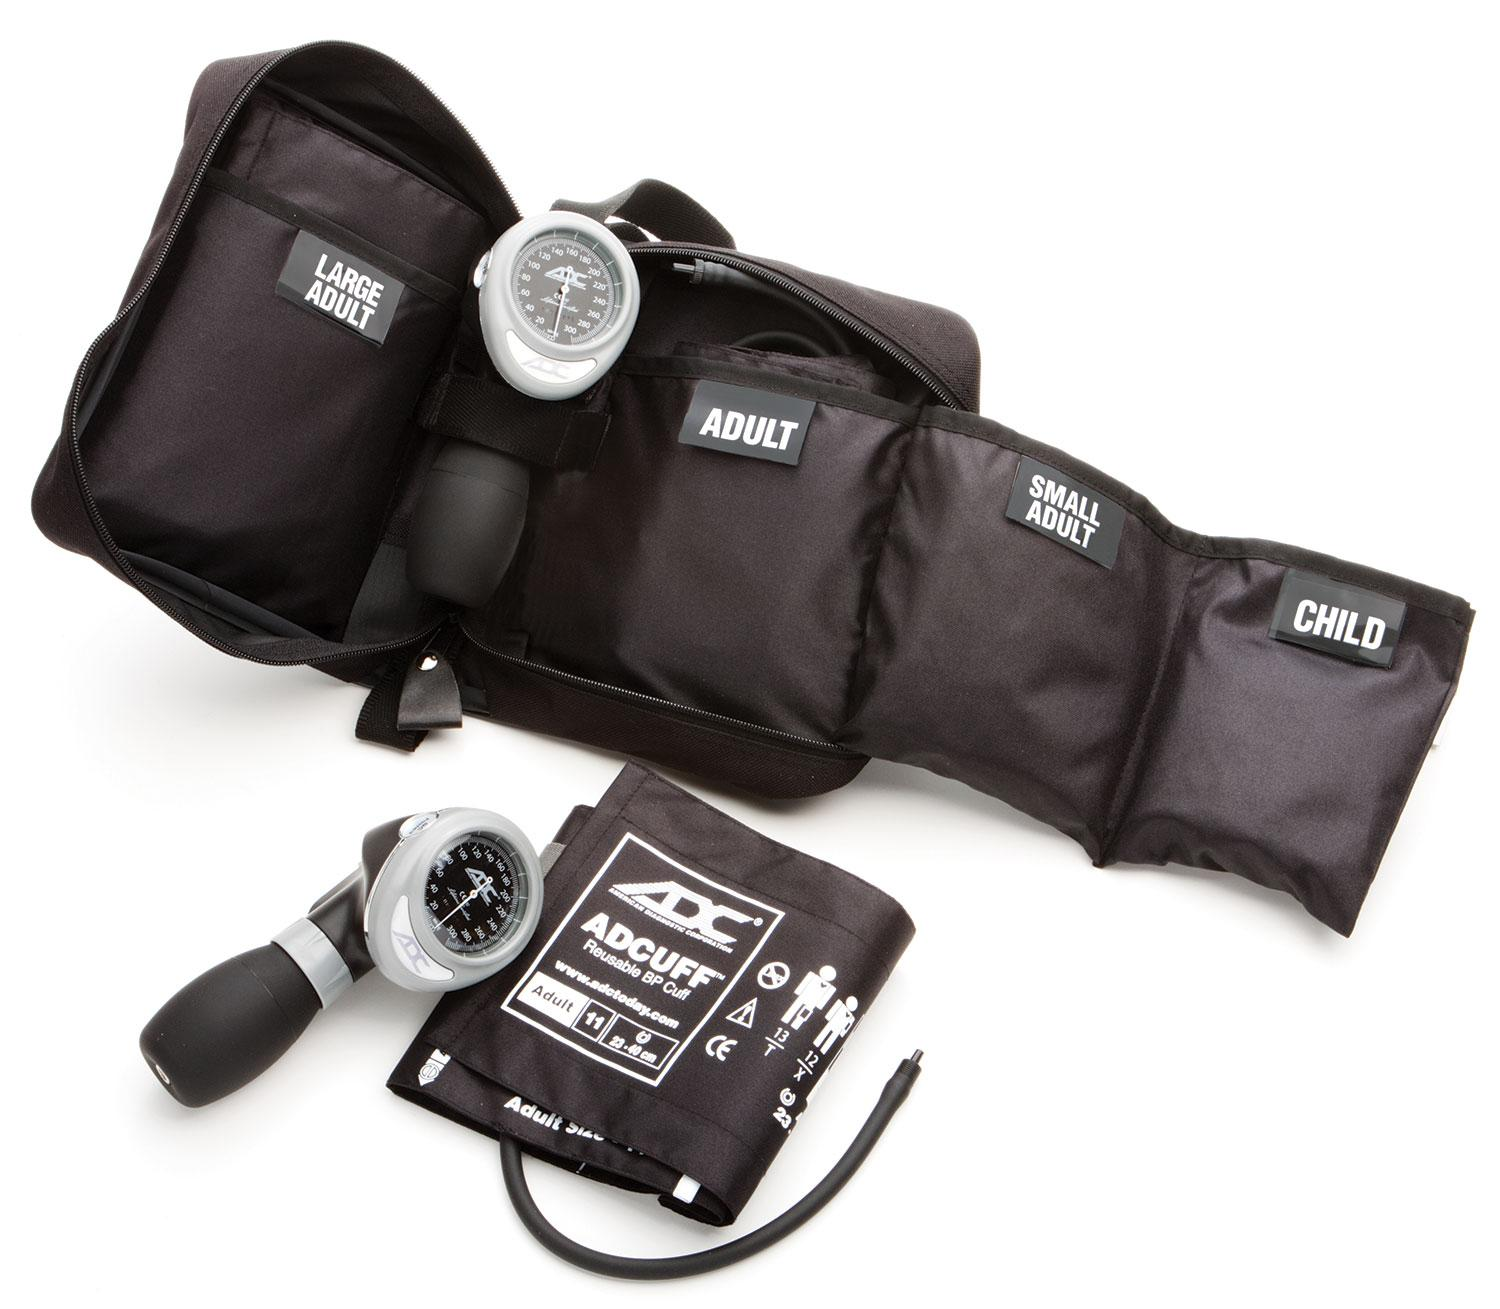 ADC Multikuf™ 4 Cuff Blood Pressure System Black